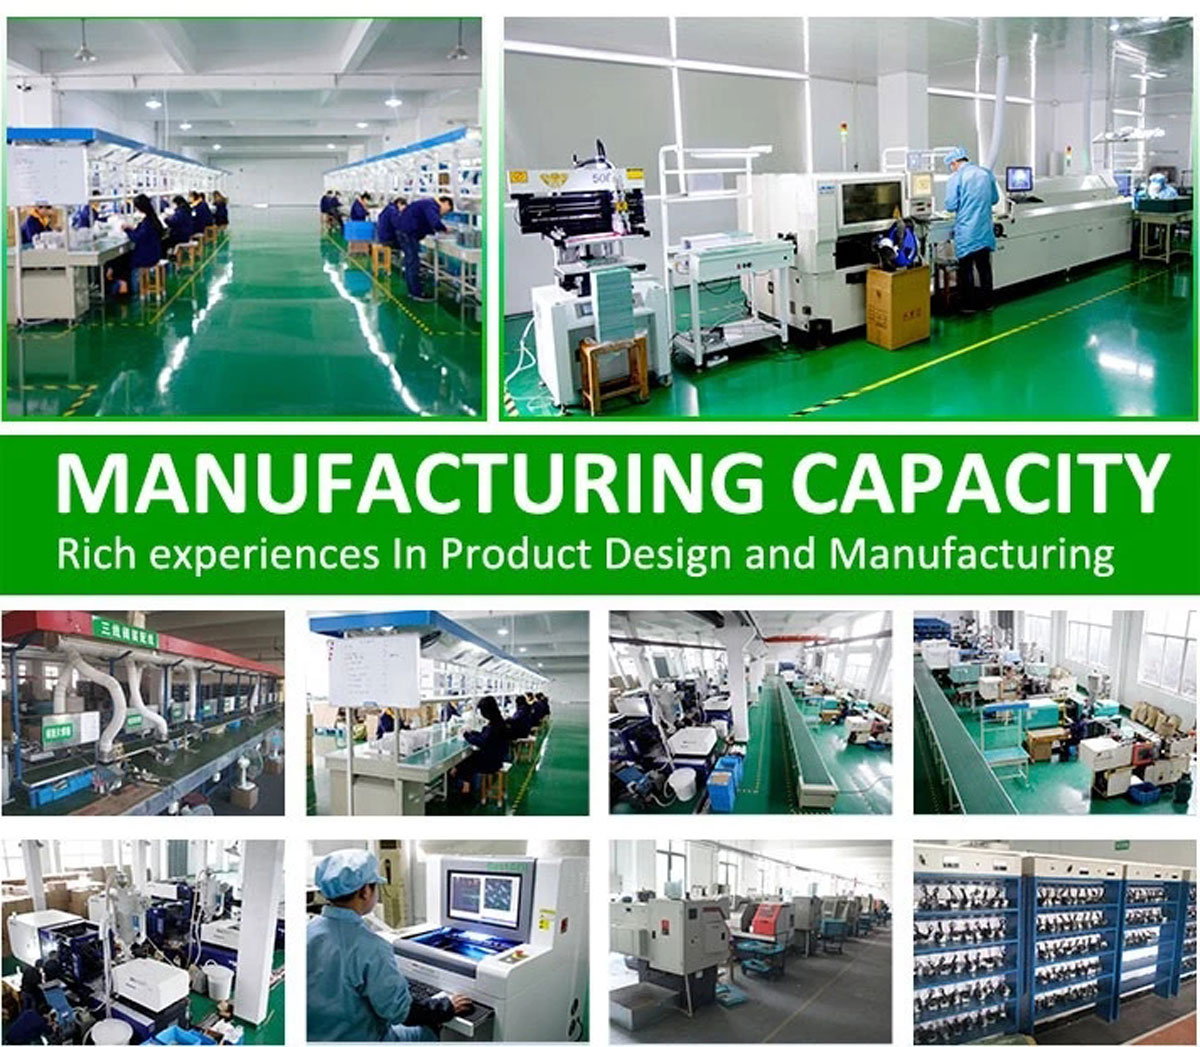 Hotowell manufacturing capacity.jpg